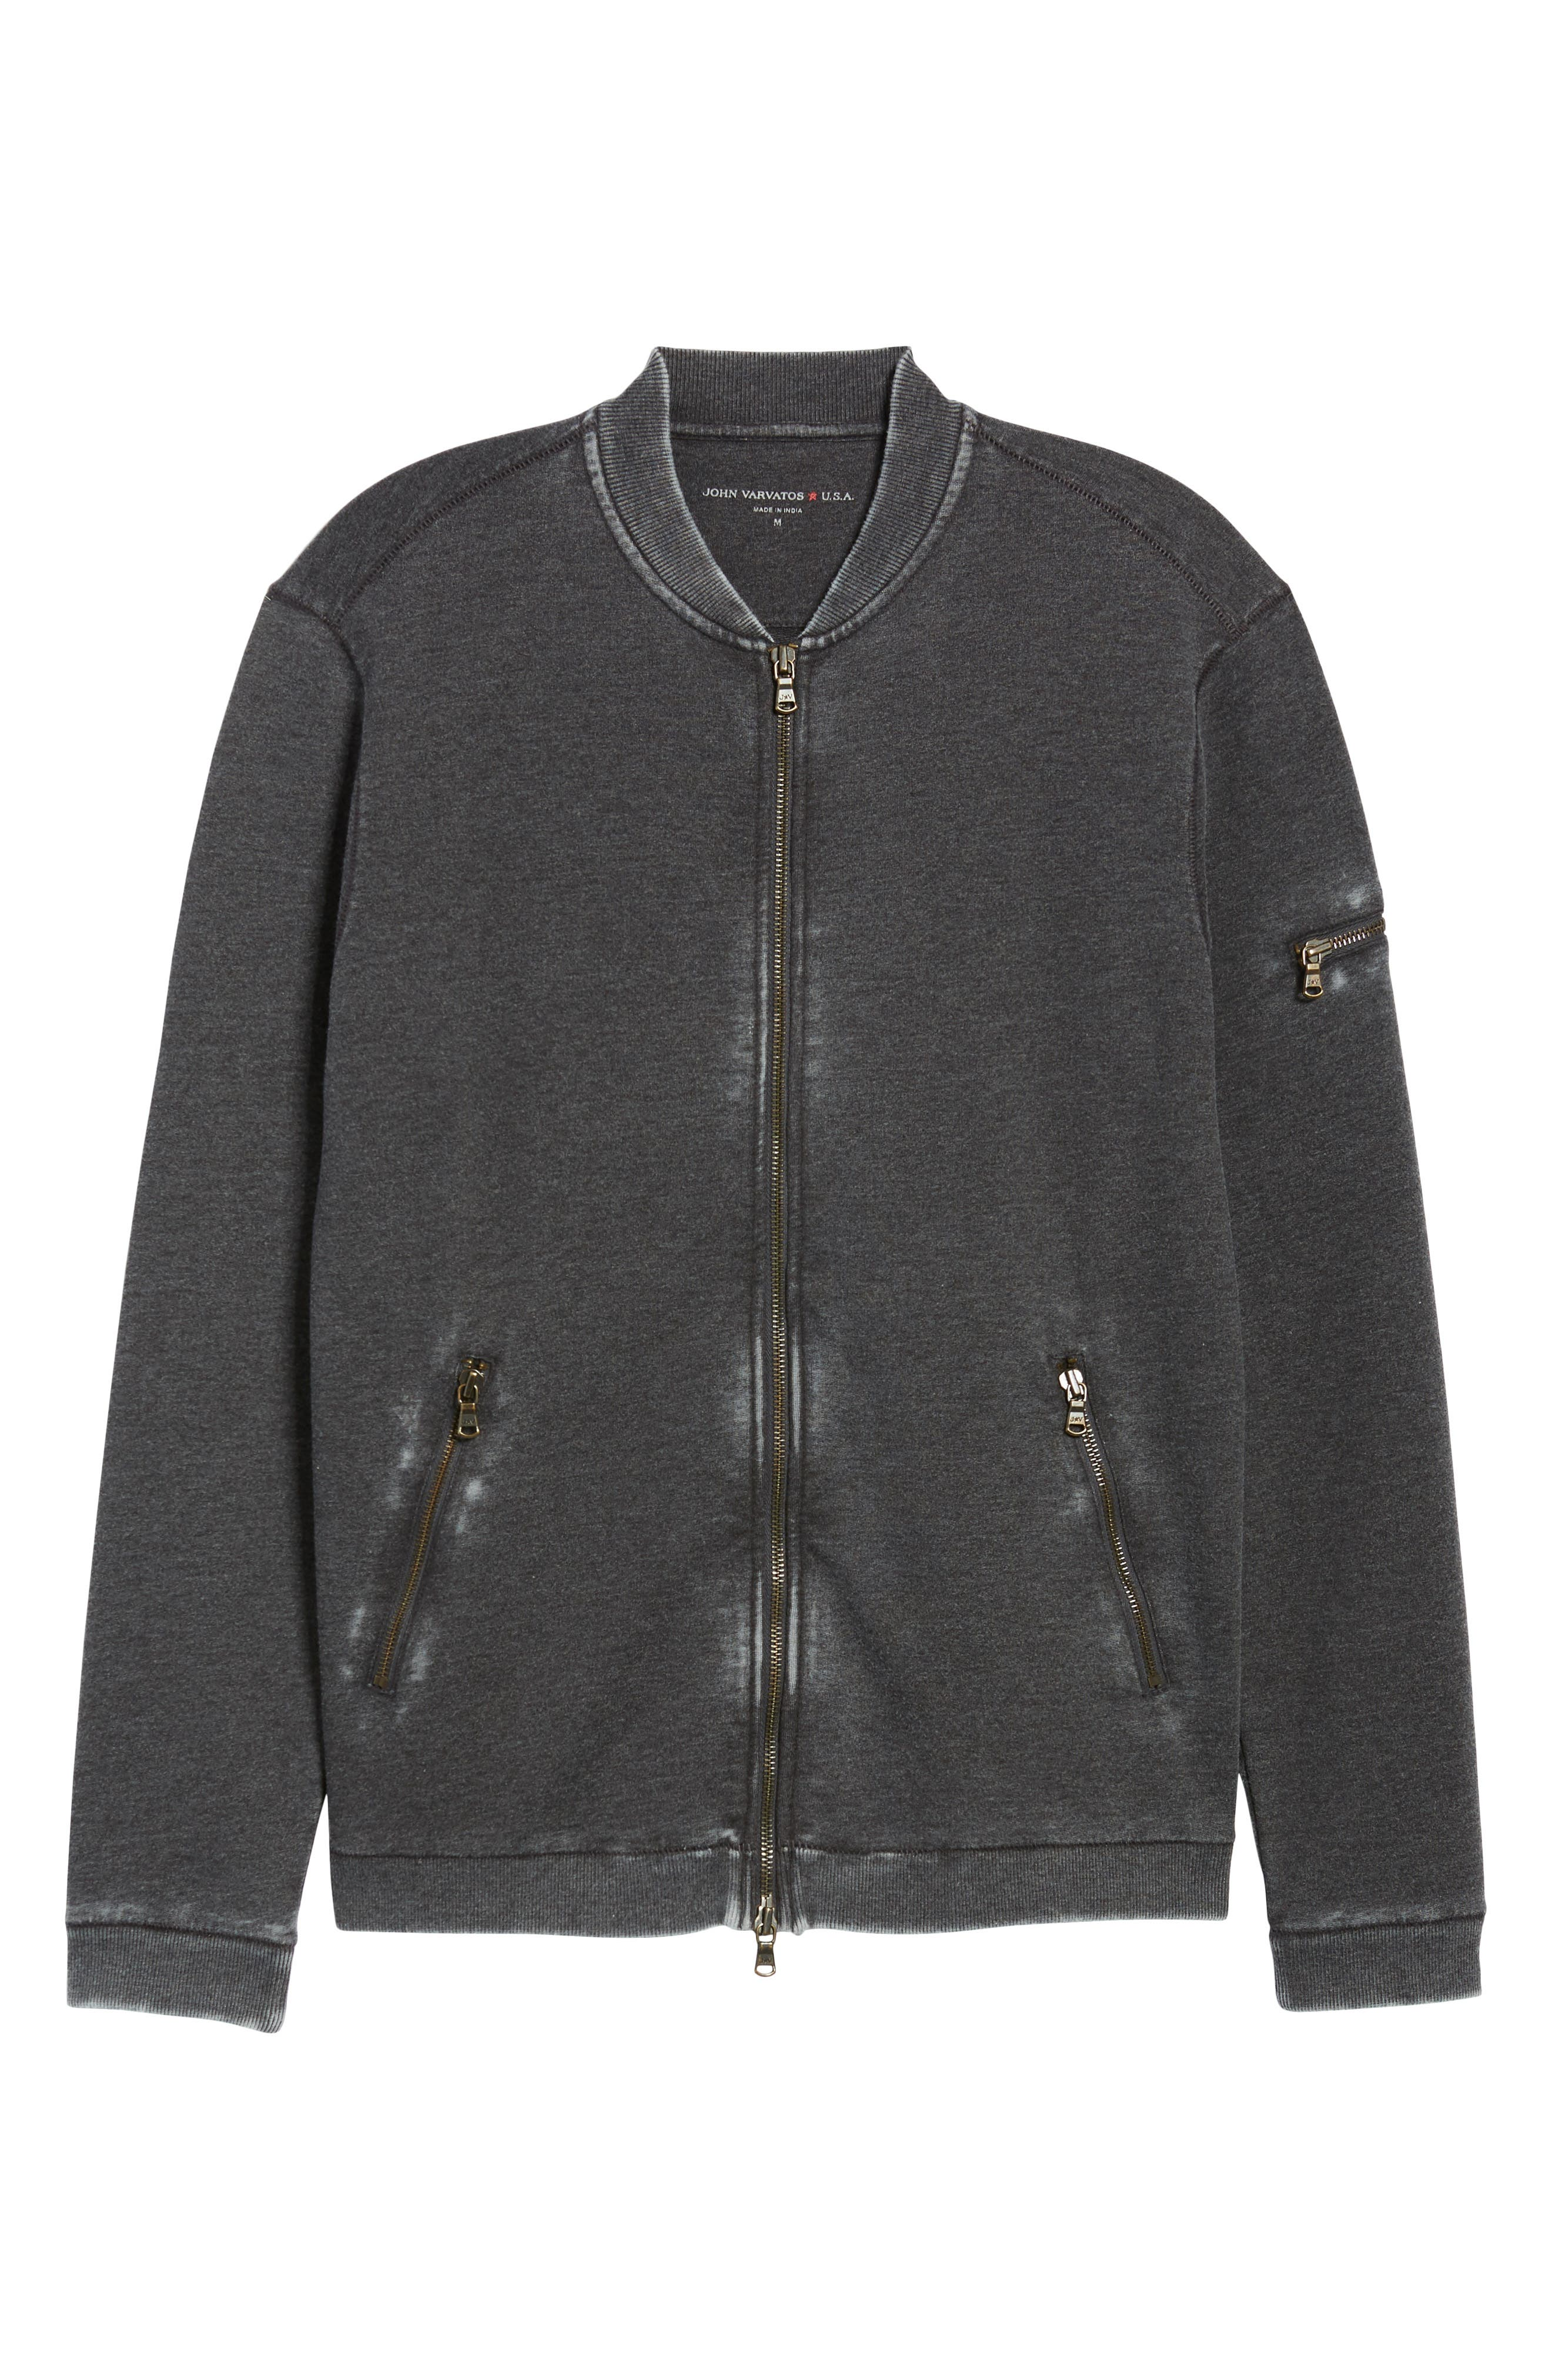 Burnout French Terry Zip Sweater,                             Alternate thumbnail 6, color,                             032